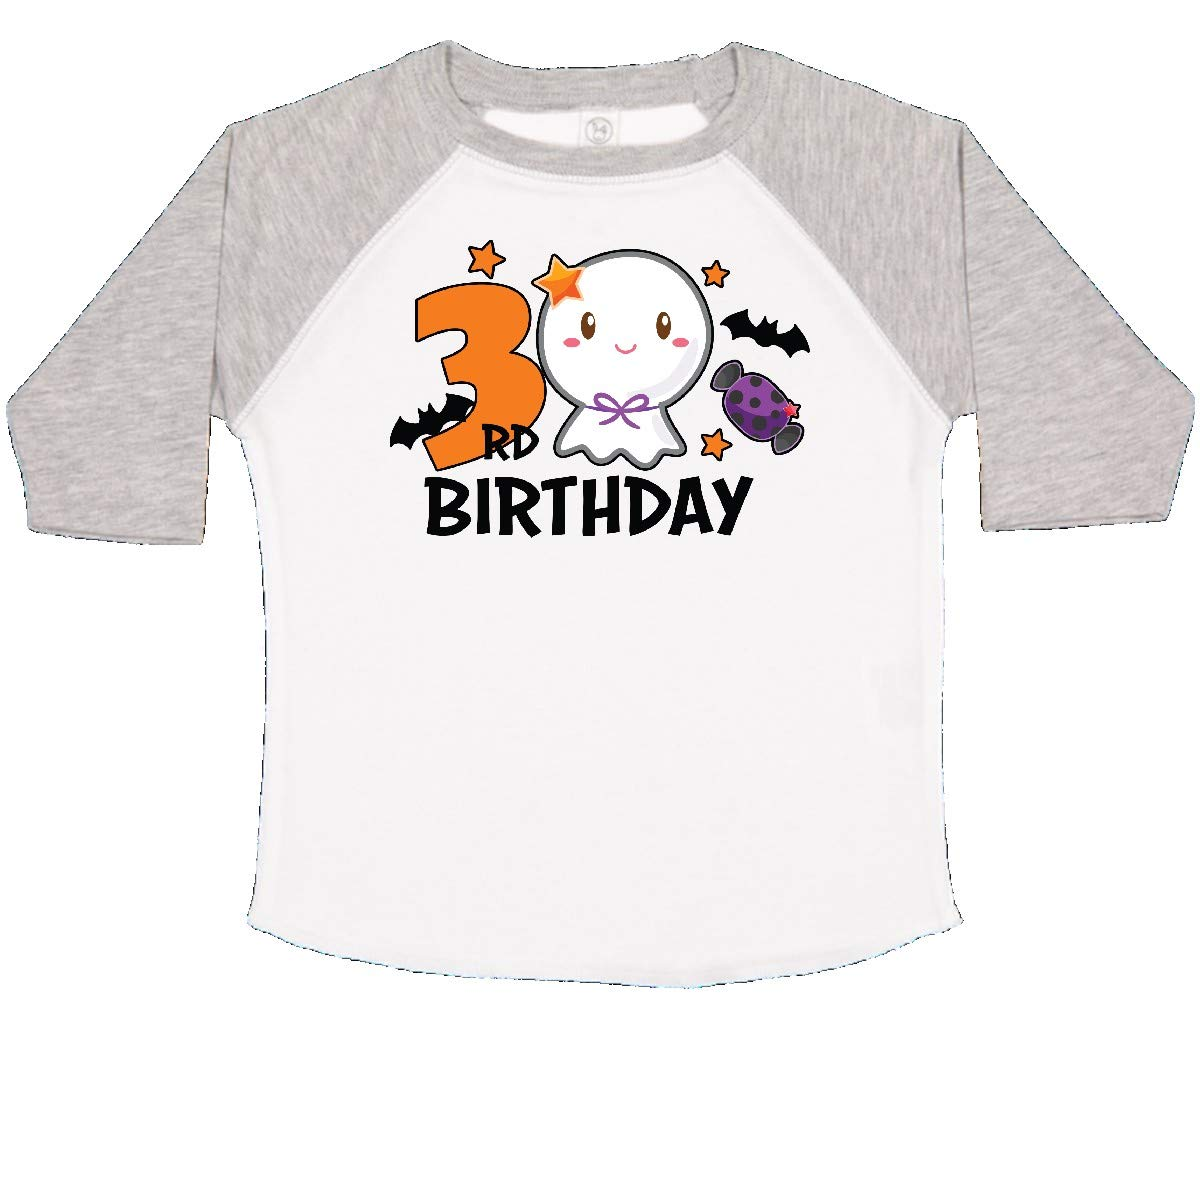 inktastic 3rd Birthday with Cute Ghost and Bat Toddler T-Shirt